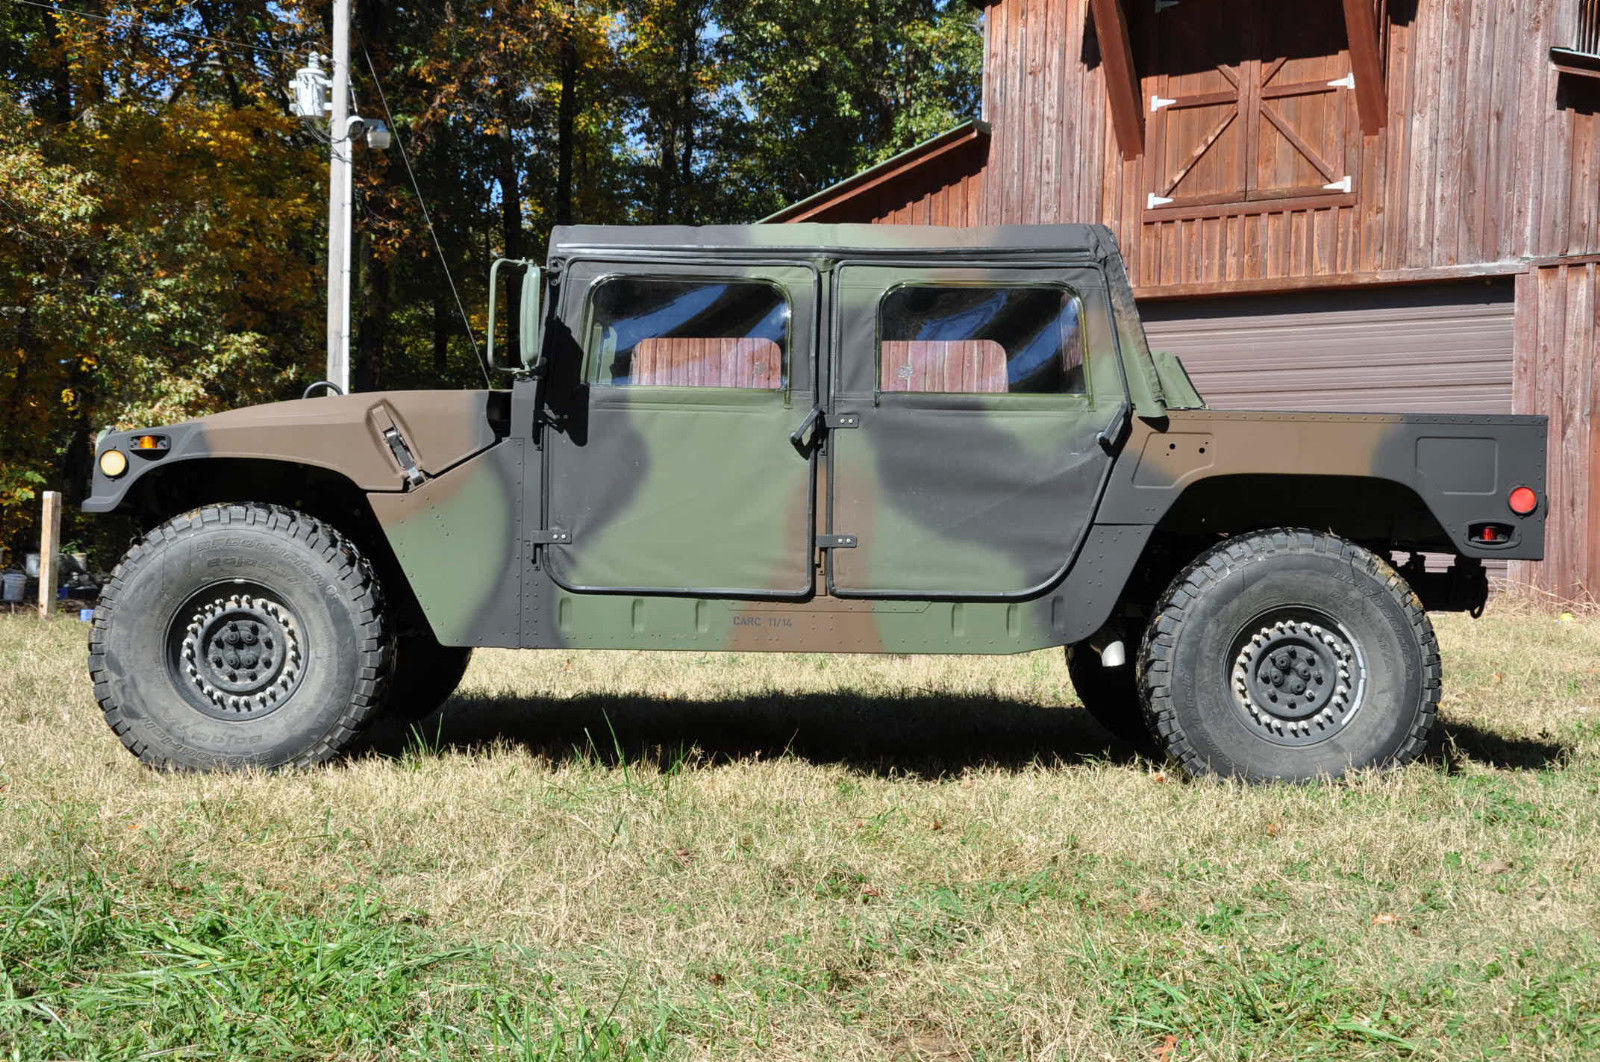 Hmmwv Humvee M1123 Enhanced Body Off Restoration With Title Trades Considered Classic